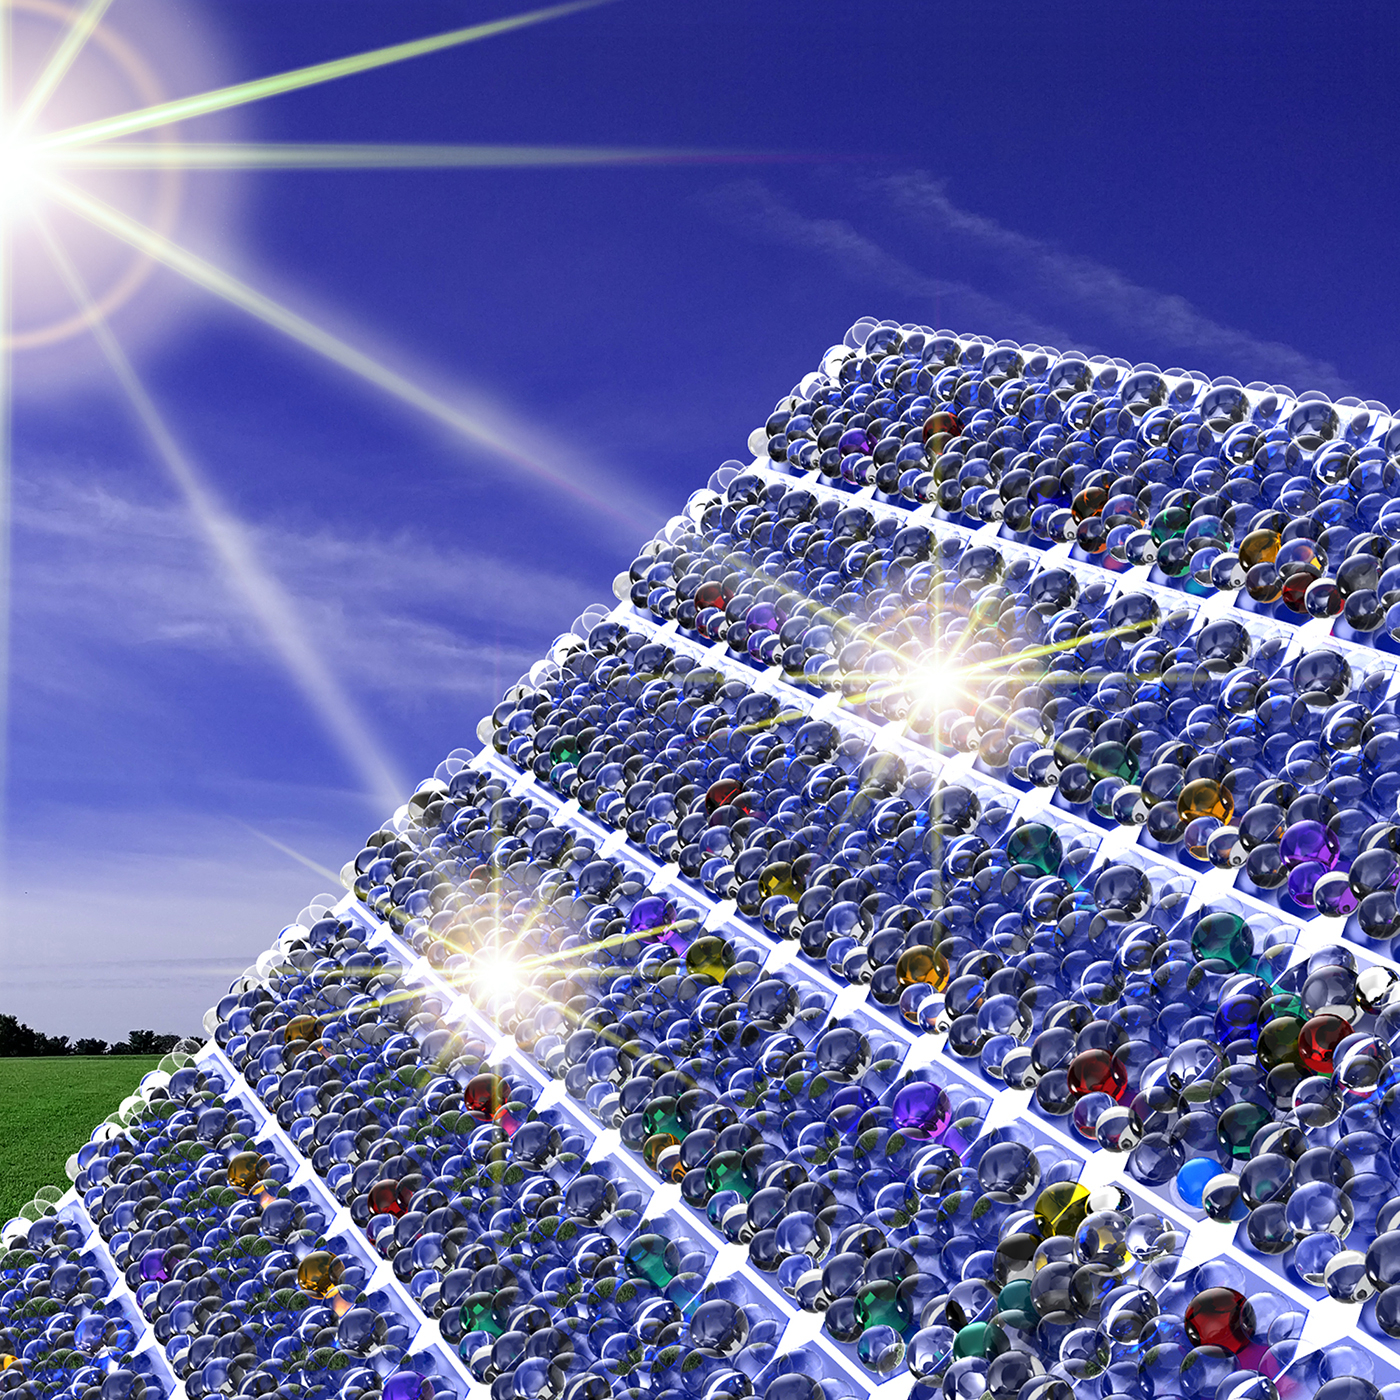 Illustration of sunlight shining on solar panel covered with nanometer-scale beads.